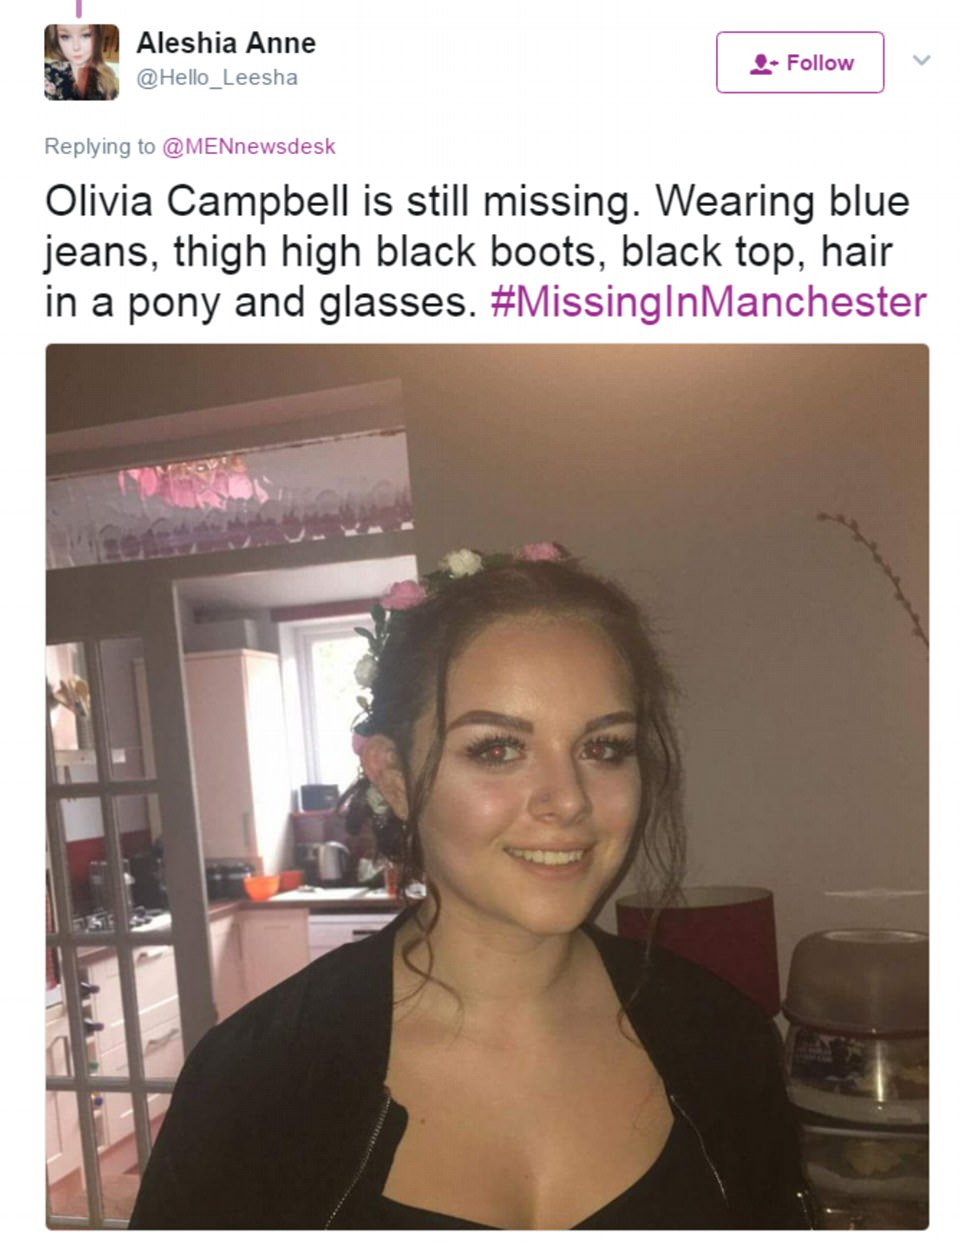 Missing: A woman named Olivia Campbell was reported as missing by a close friend. Her friend said she was wearing blue jeans and thigh-high black boots